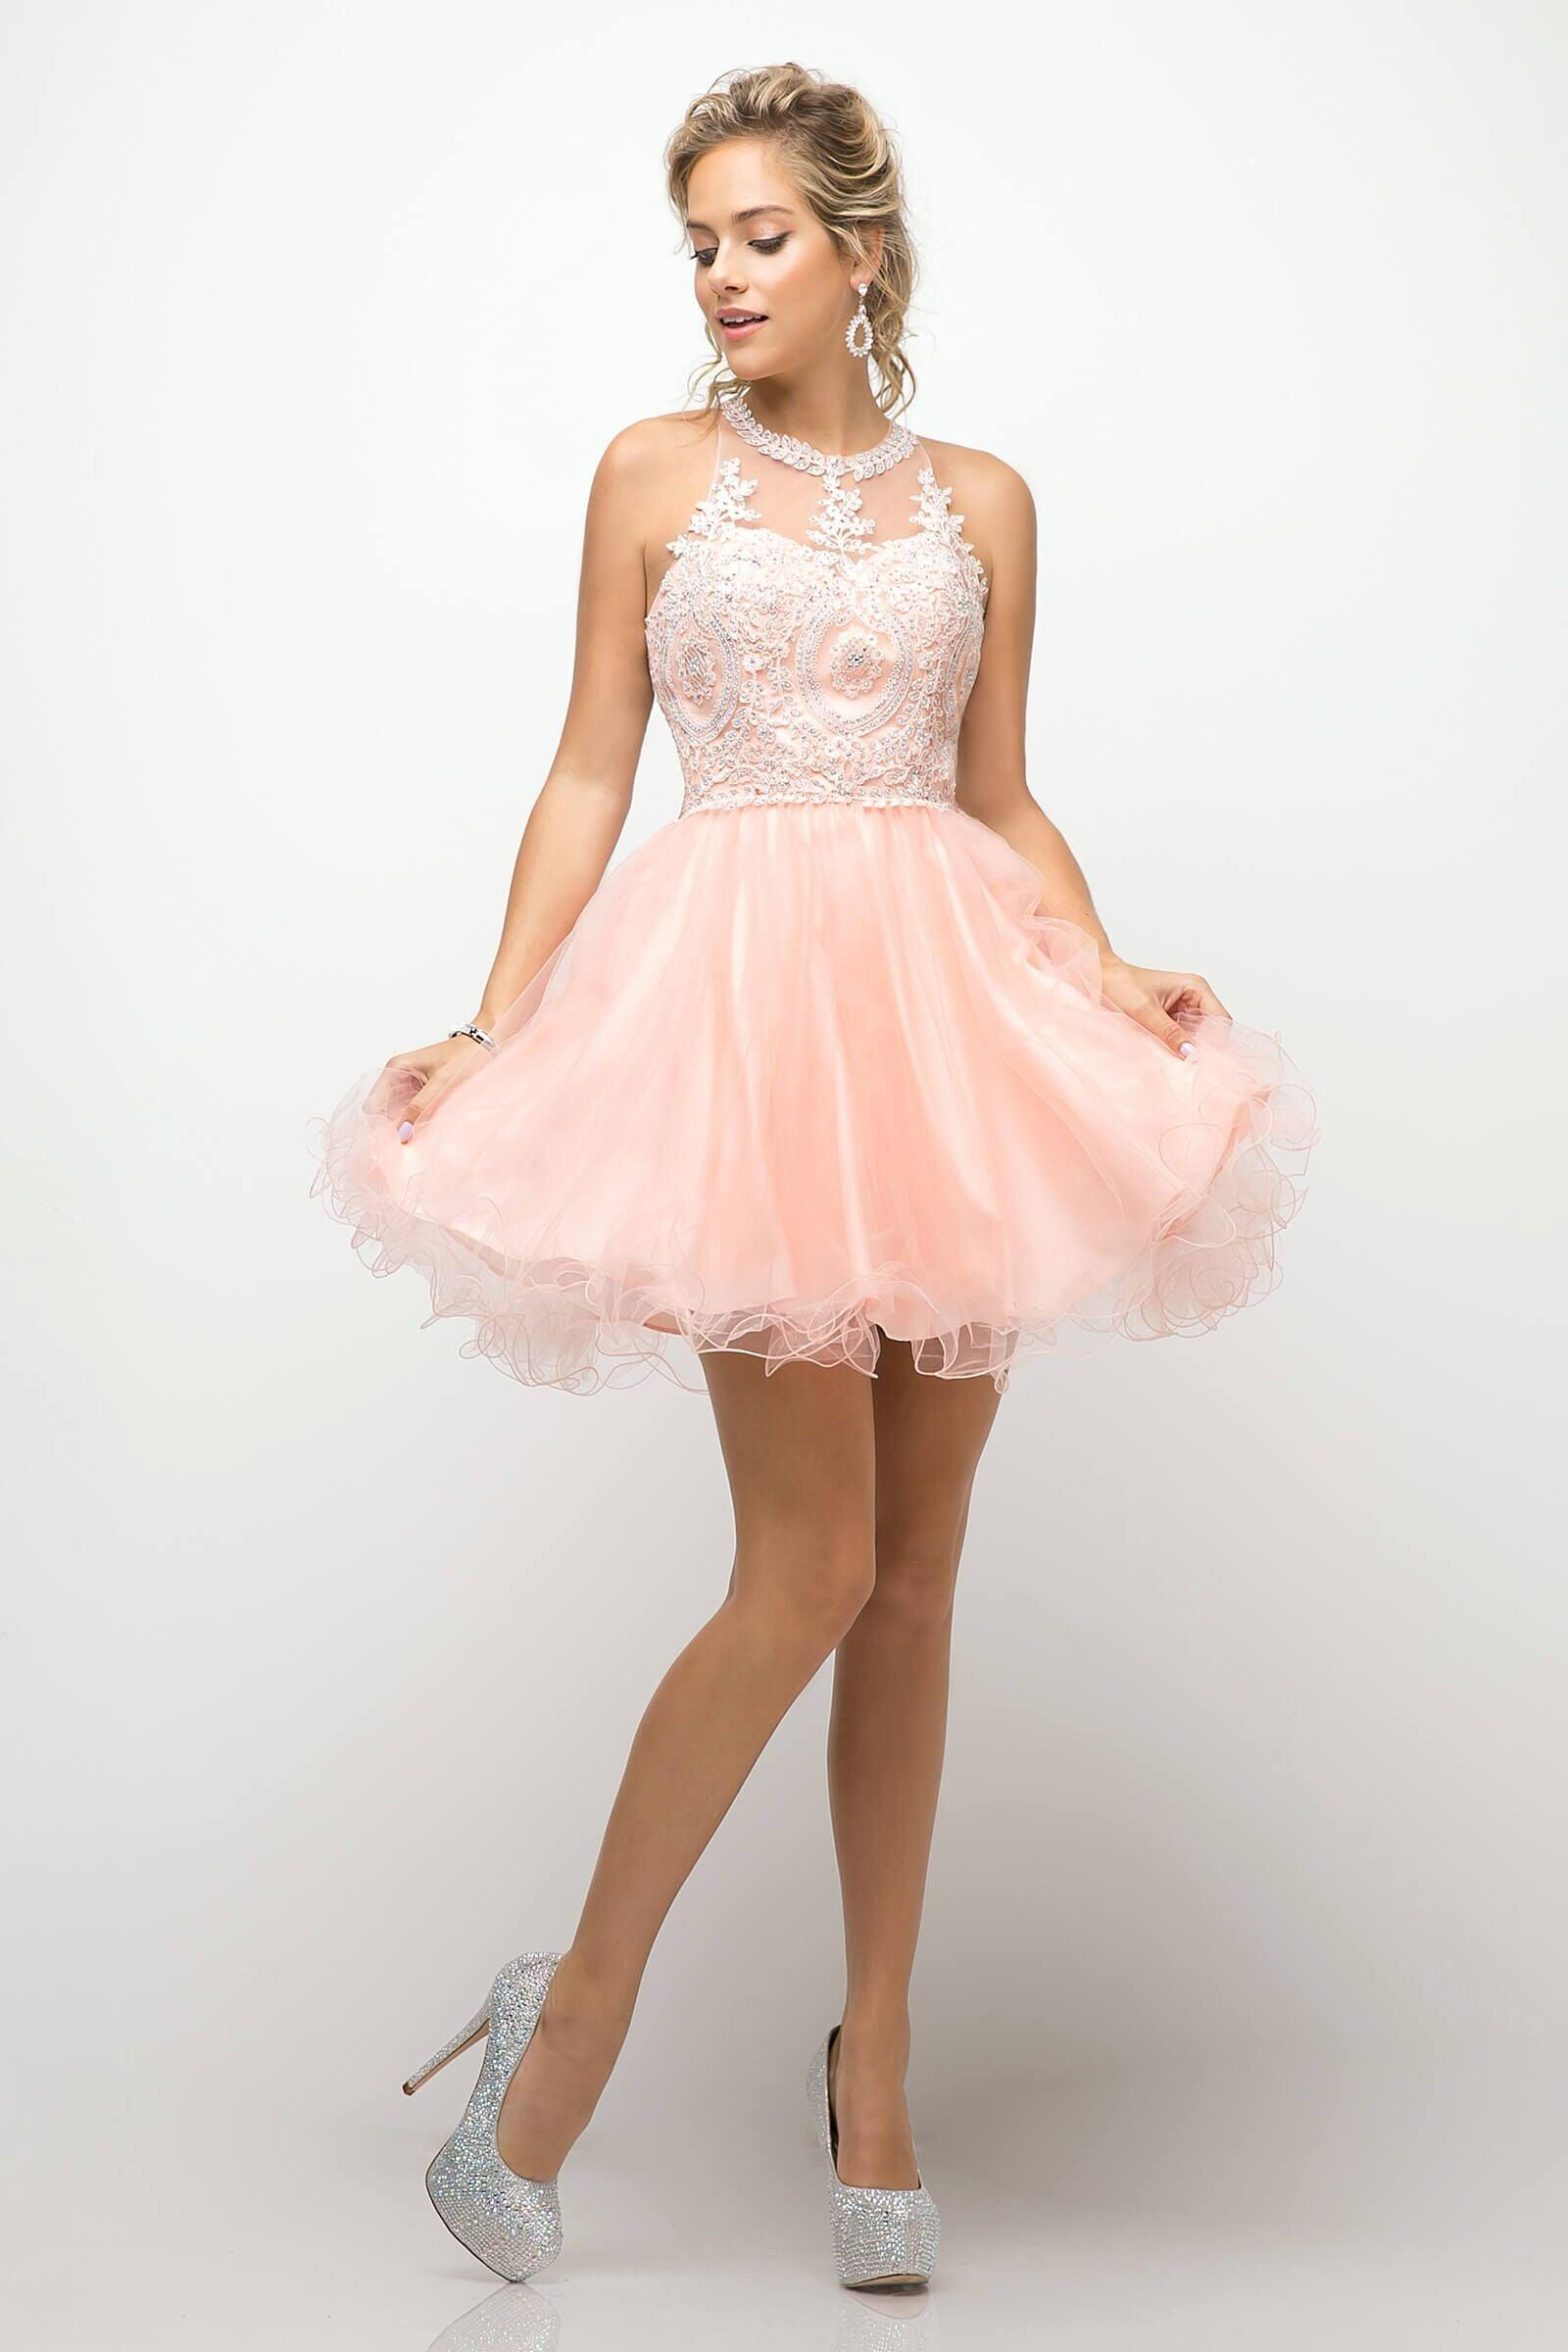 42d78121e7 ... Short Prom Halter Lace Bodice Homecoming Dress - The Dress Outlet Blush  Cinderella Divine ...